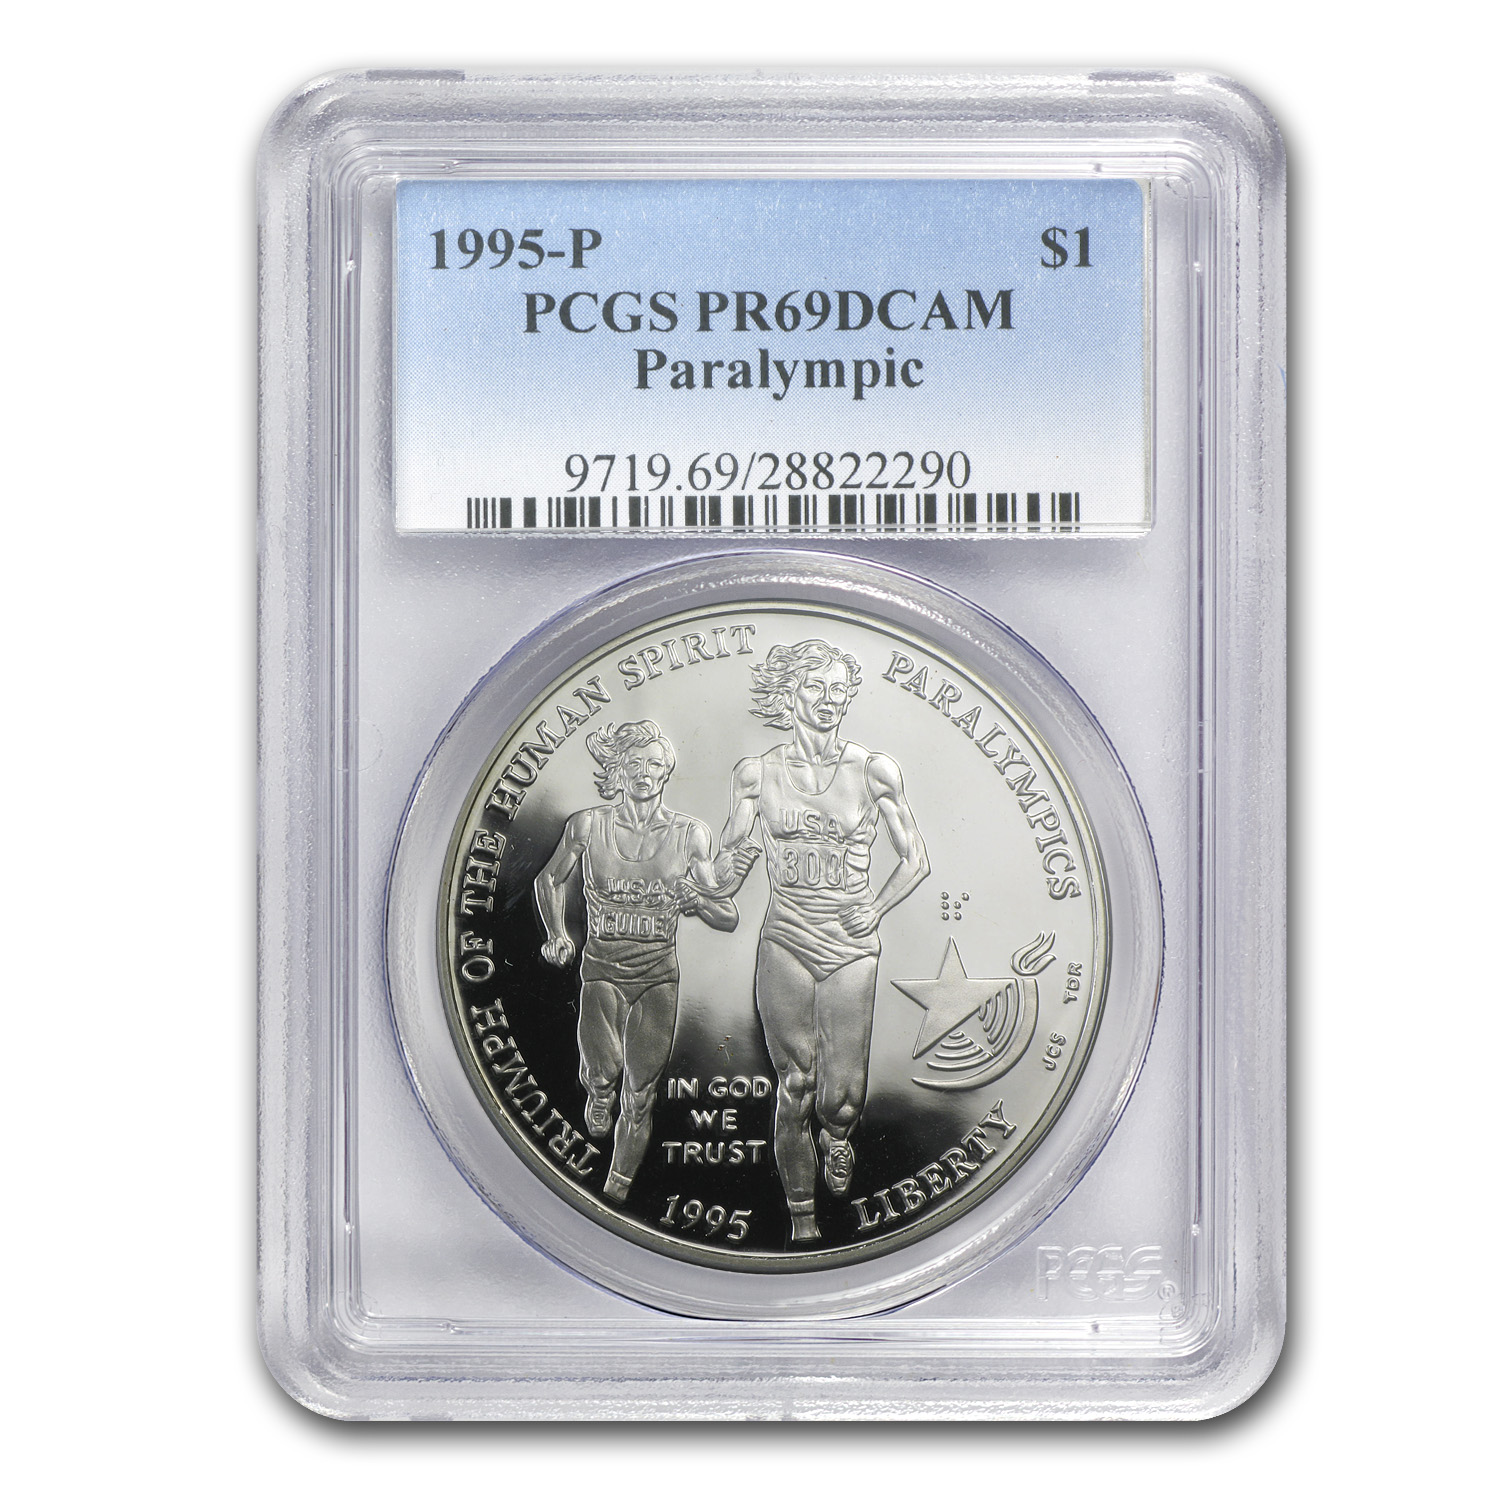 1995-P Olympic Blind Runner $1 Silver Commem PR-69 PCGS